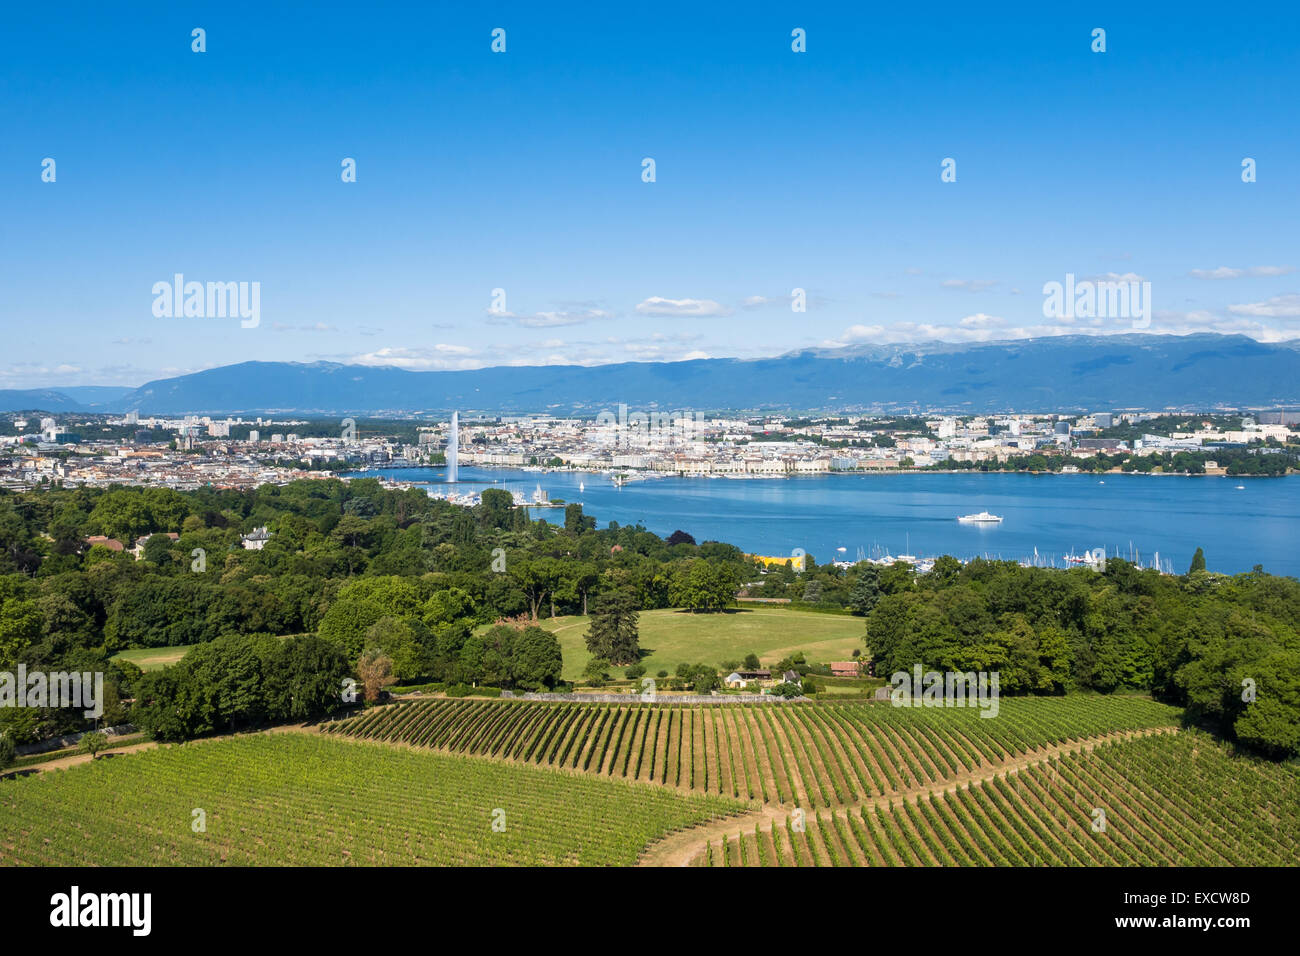 Aerial view of Leman lake -  Geneva city in Switzerland - Stock Image